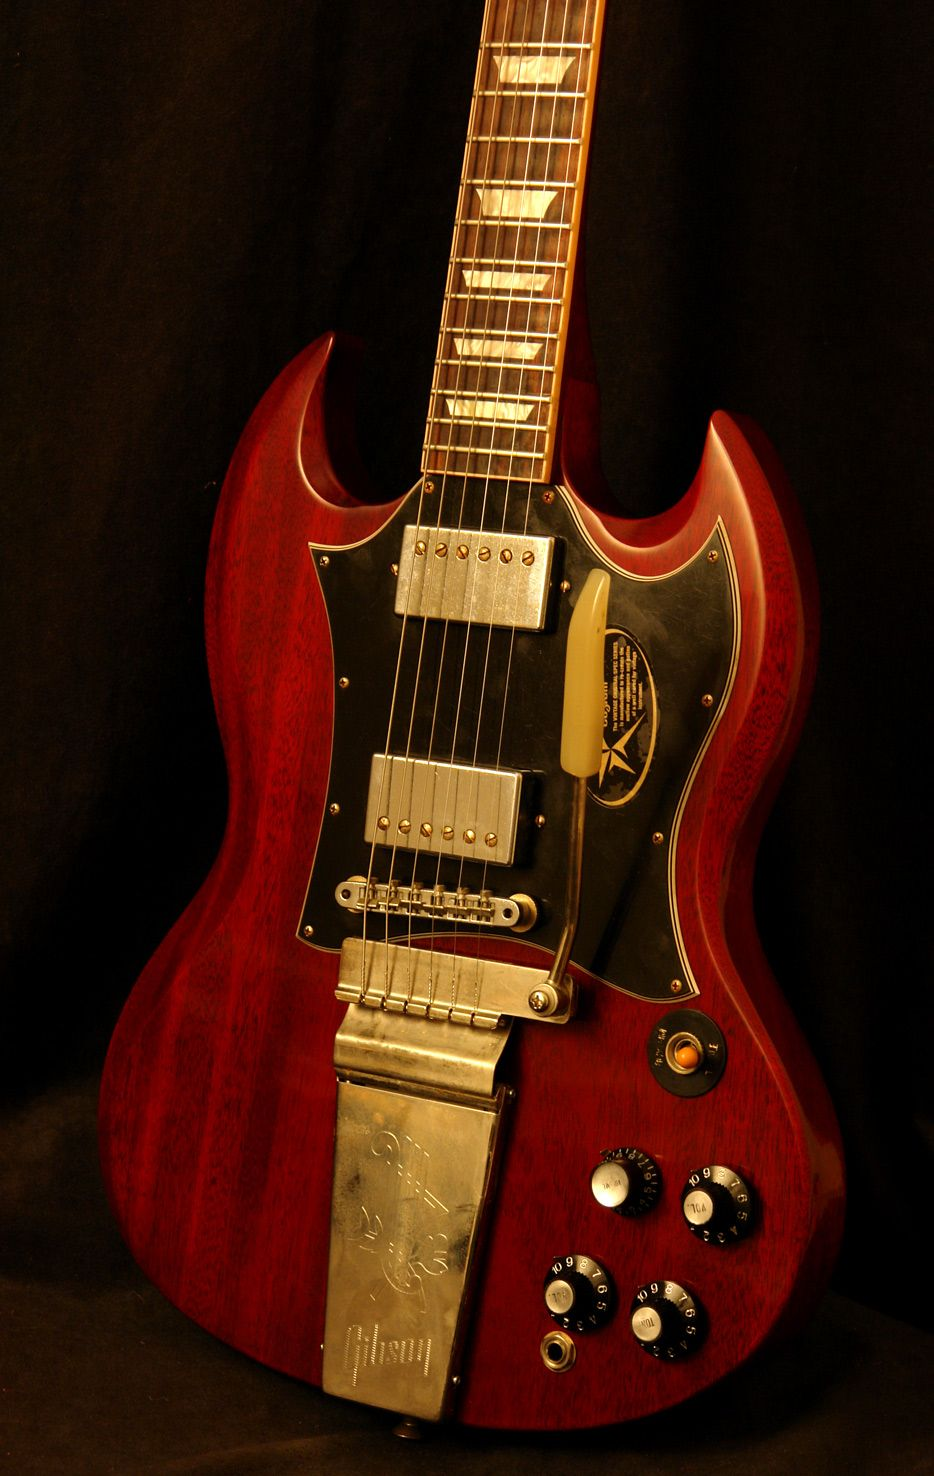 Gibson Robby Krieger Sg Vos Guitar Guitars For Sale Vintage Guitars Acoustic